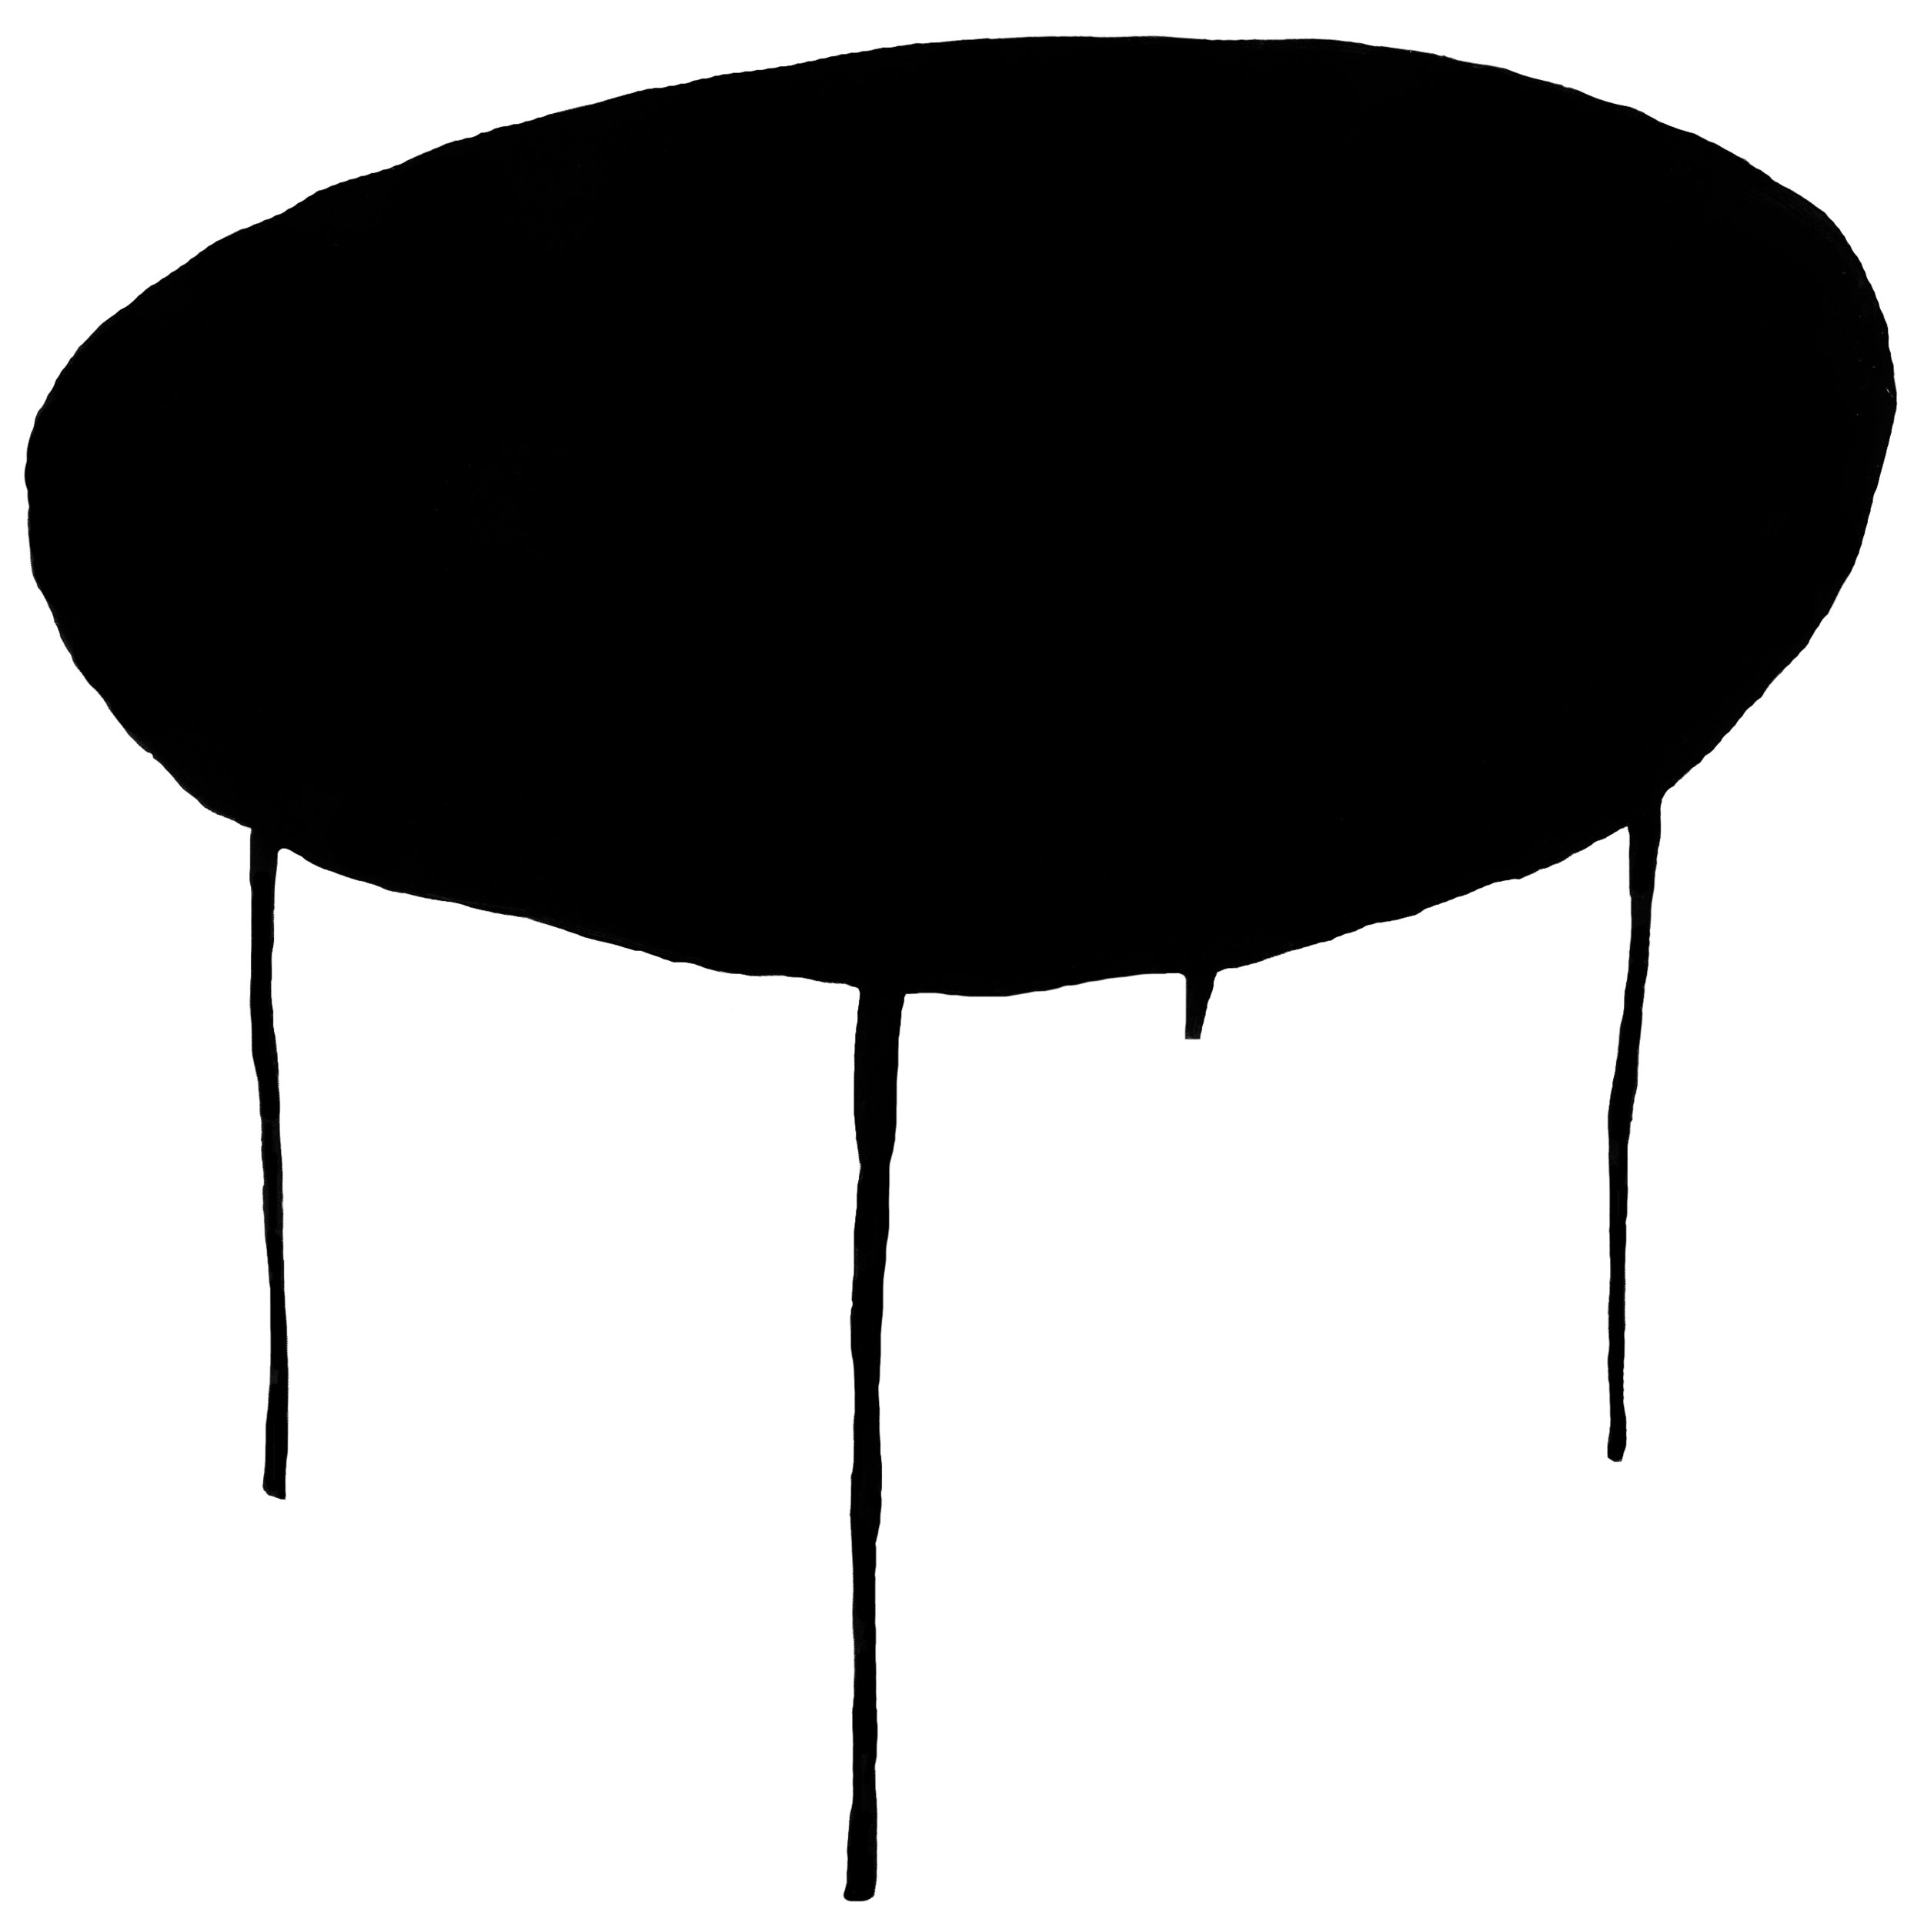 1_solid_table_9x9.jpg